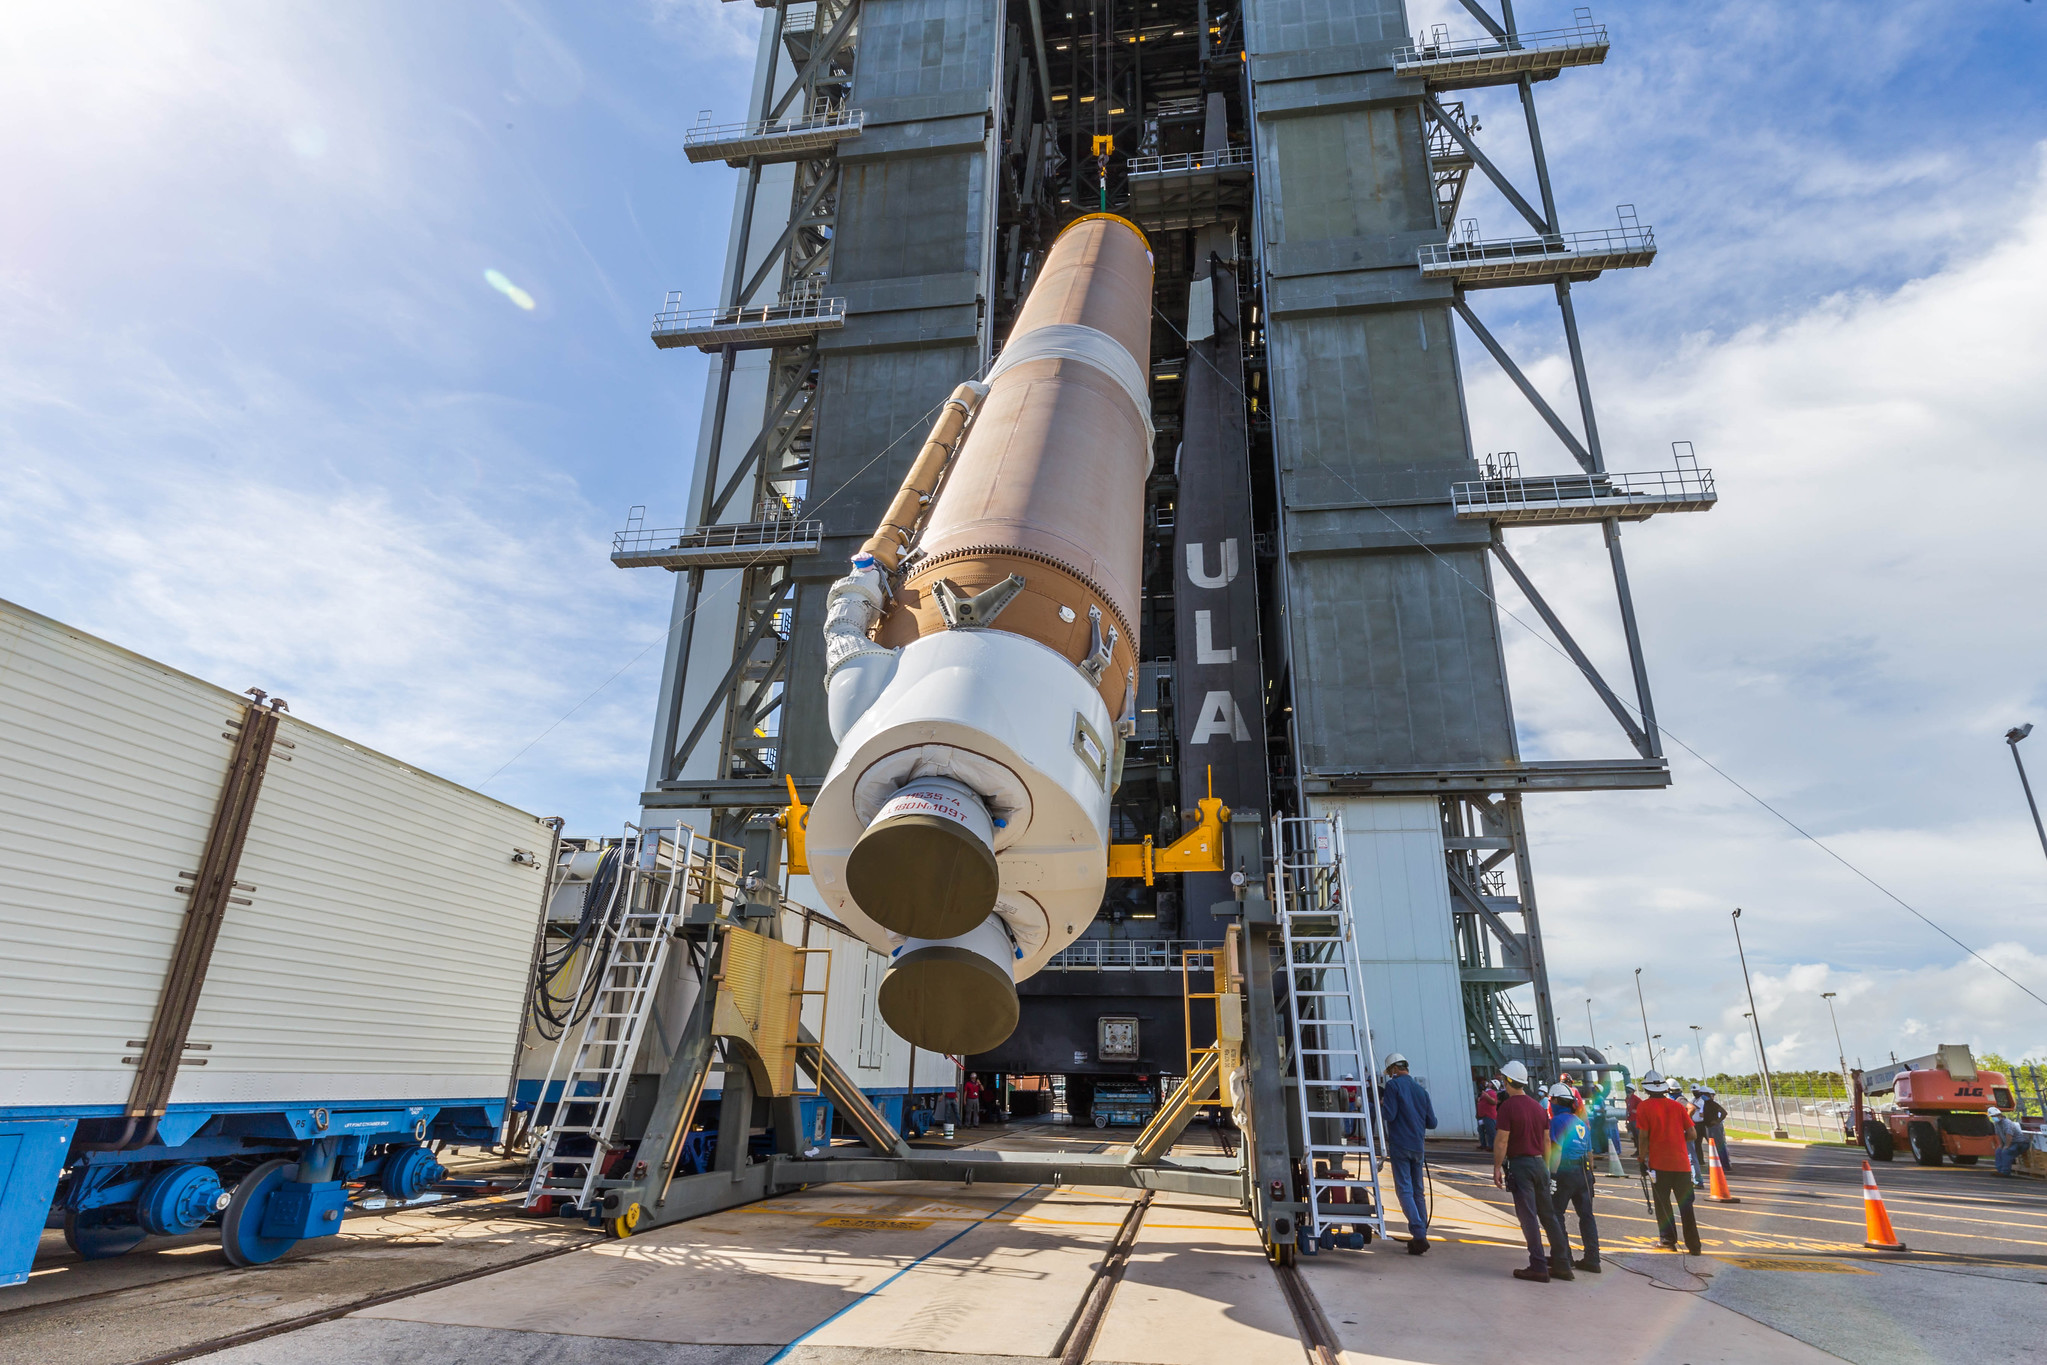 The Atlas V first stage for NROL-101 is hoisted into the Vertical Integration Facility (VIF). Photo by United Launch Alliance